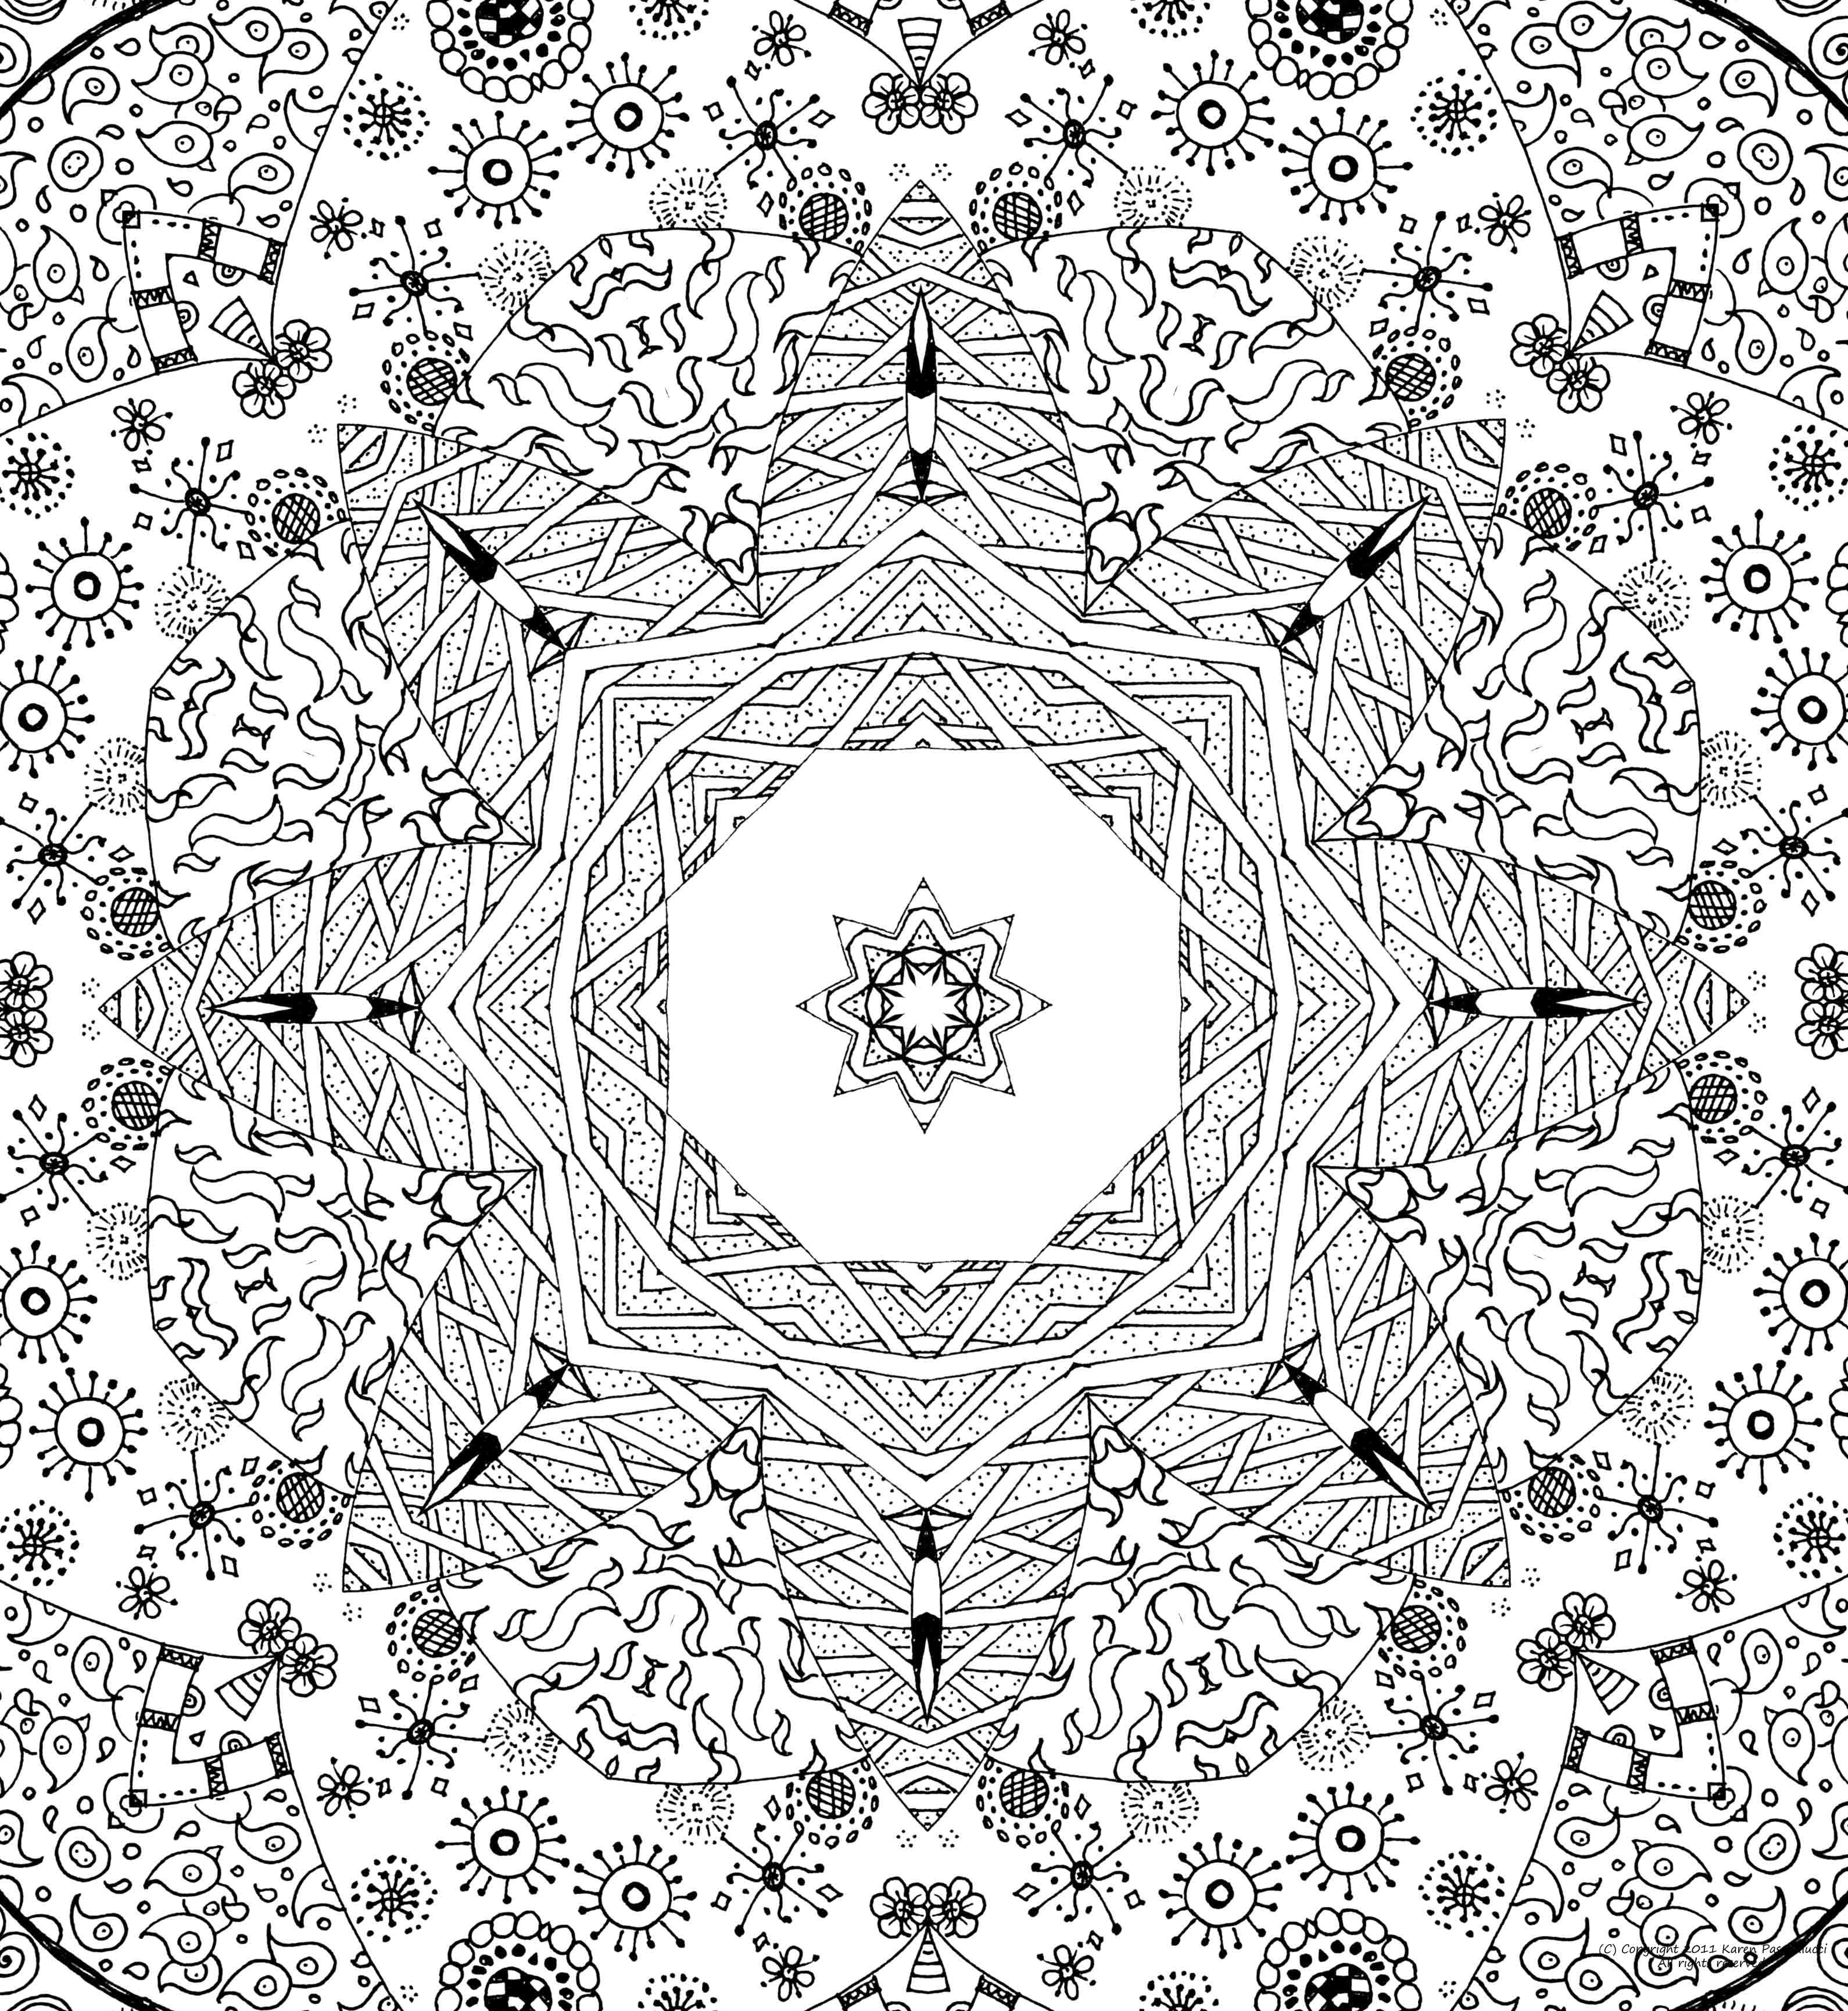 Stress relief coloring pages mandala - Detailed Coloring Pages For Adults Please Use The Mandala For Your Personal Growth And Delight